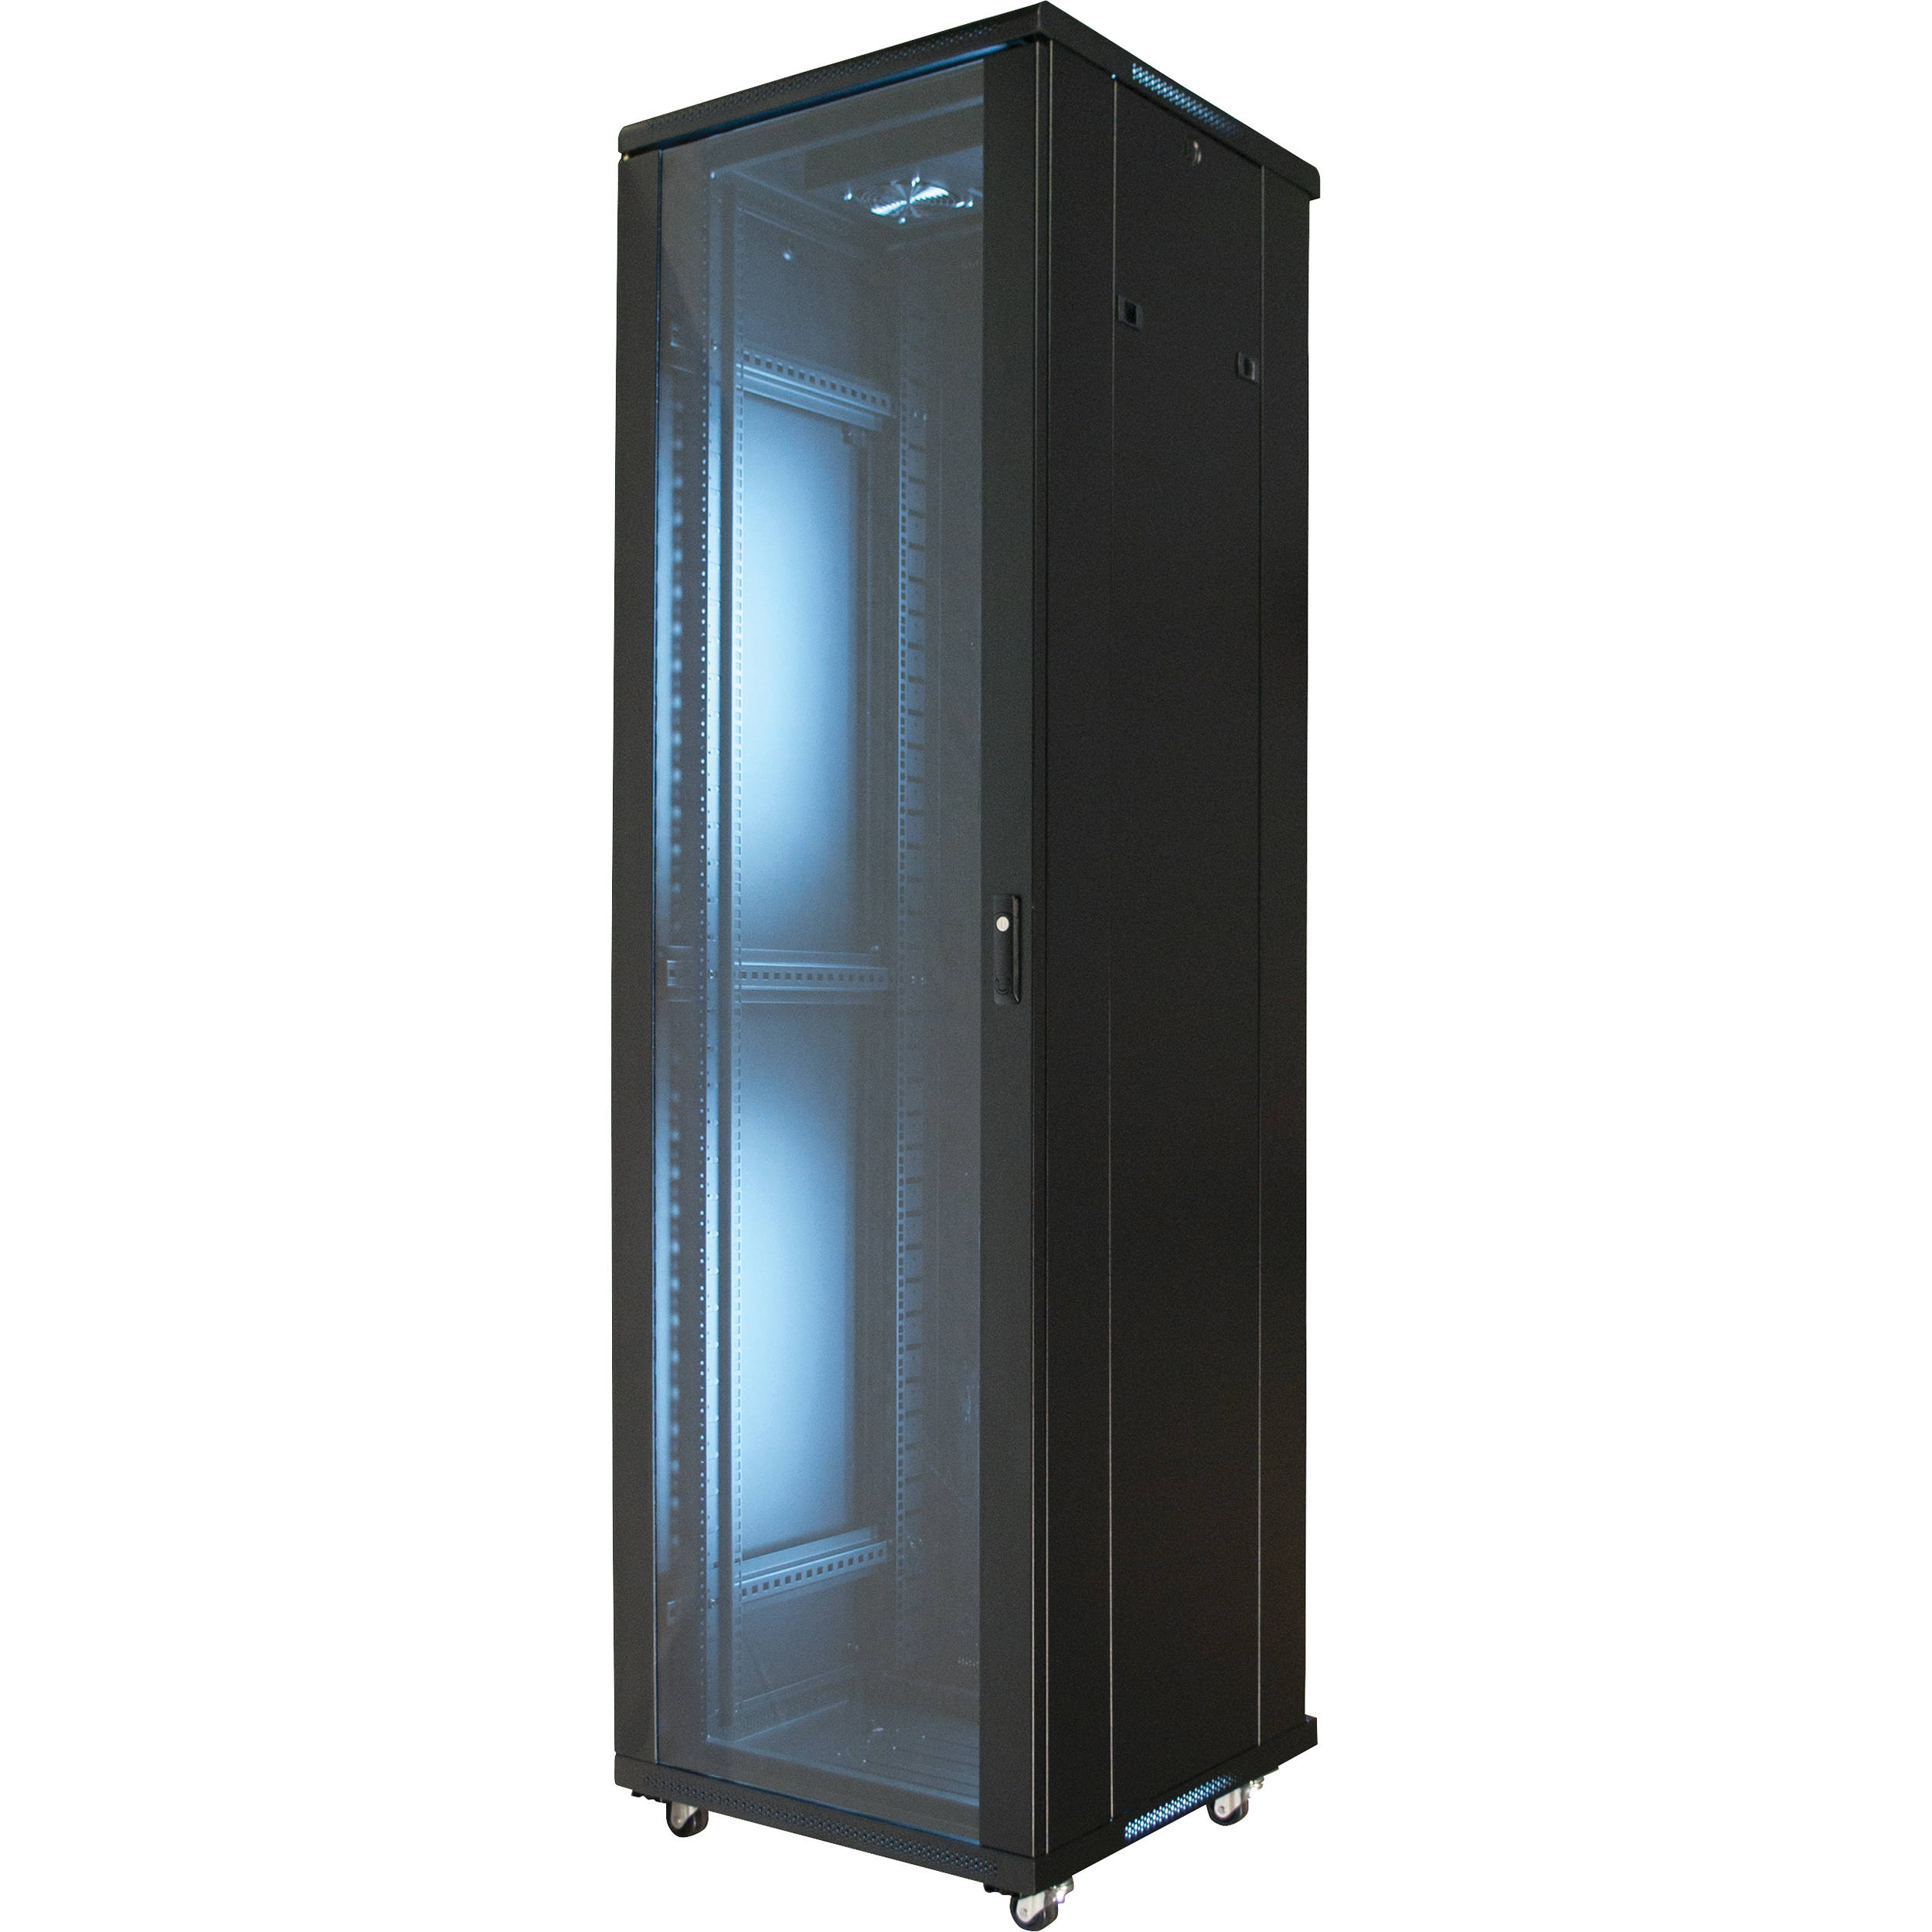 rack larger com computer cabinet post case equipment dp frame open server startech view